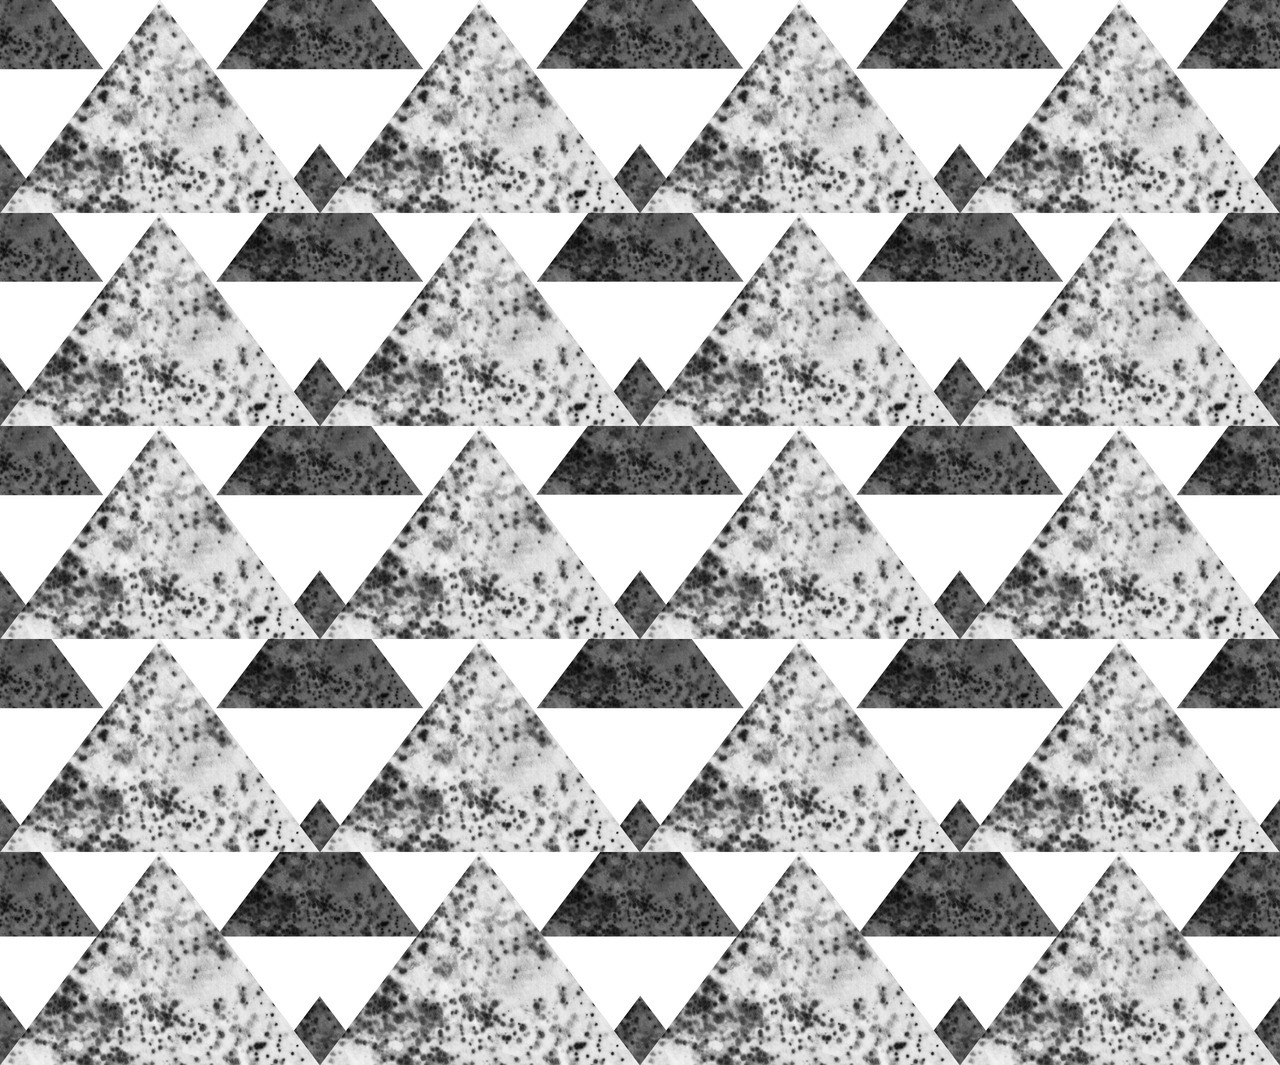 Day 118- Granite Triangles